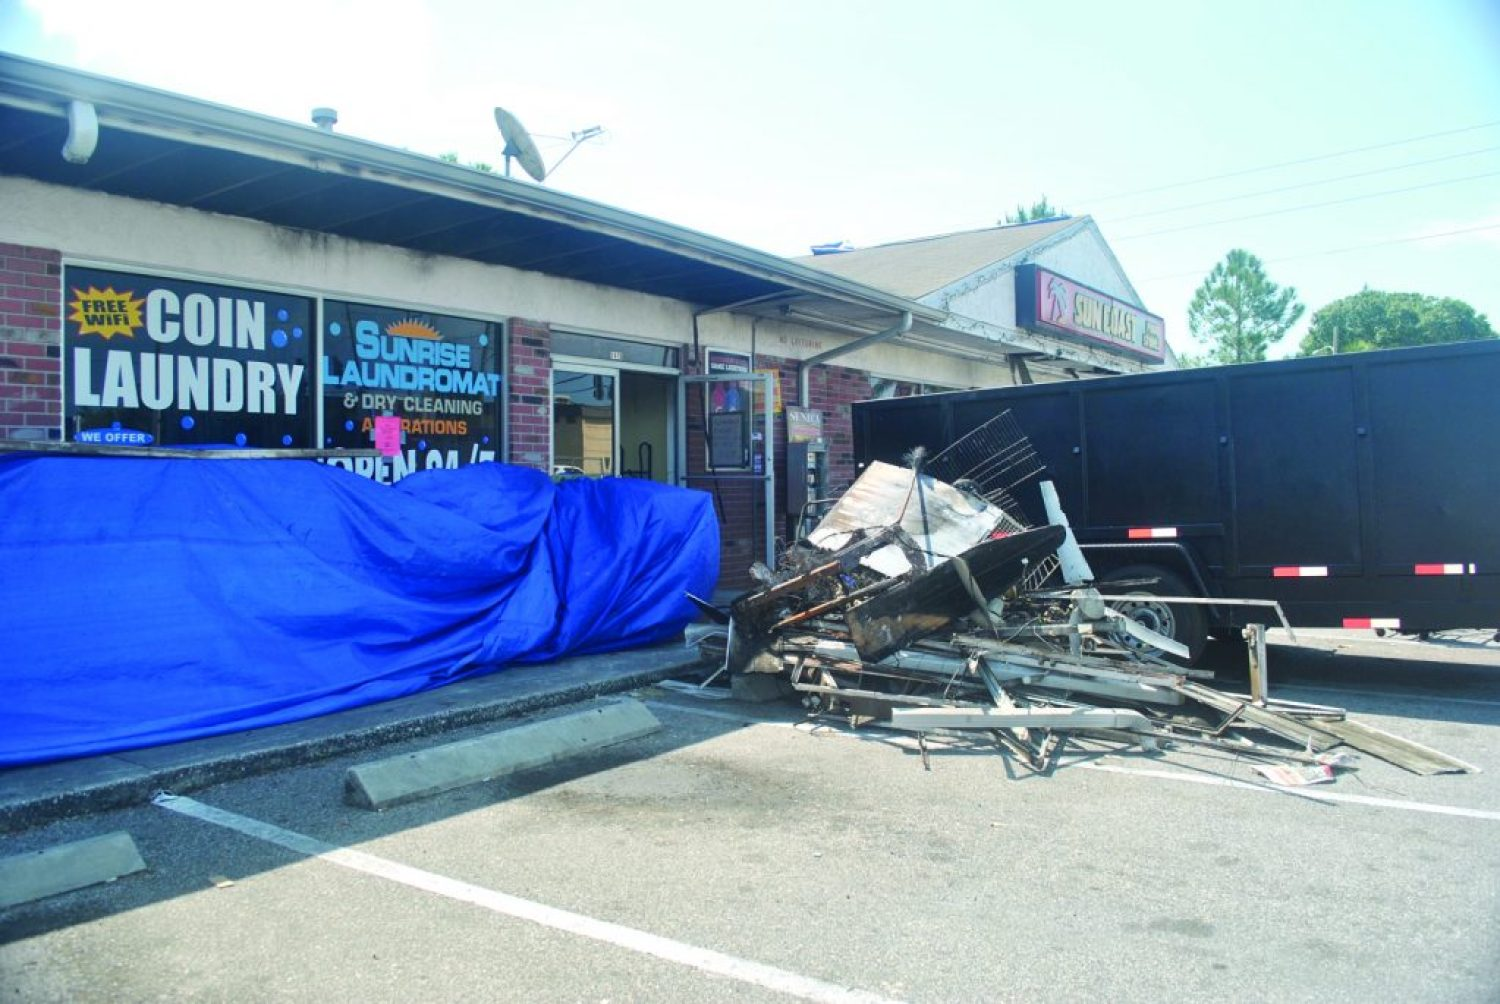 Four businesses were damaged by a recent fire; residents and local organizations are picking up the slack to help.